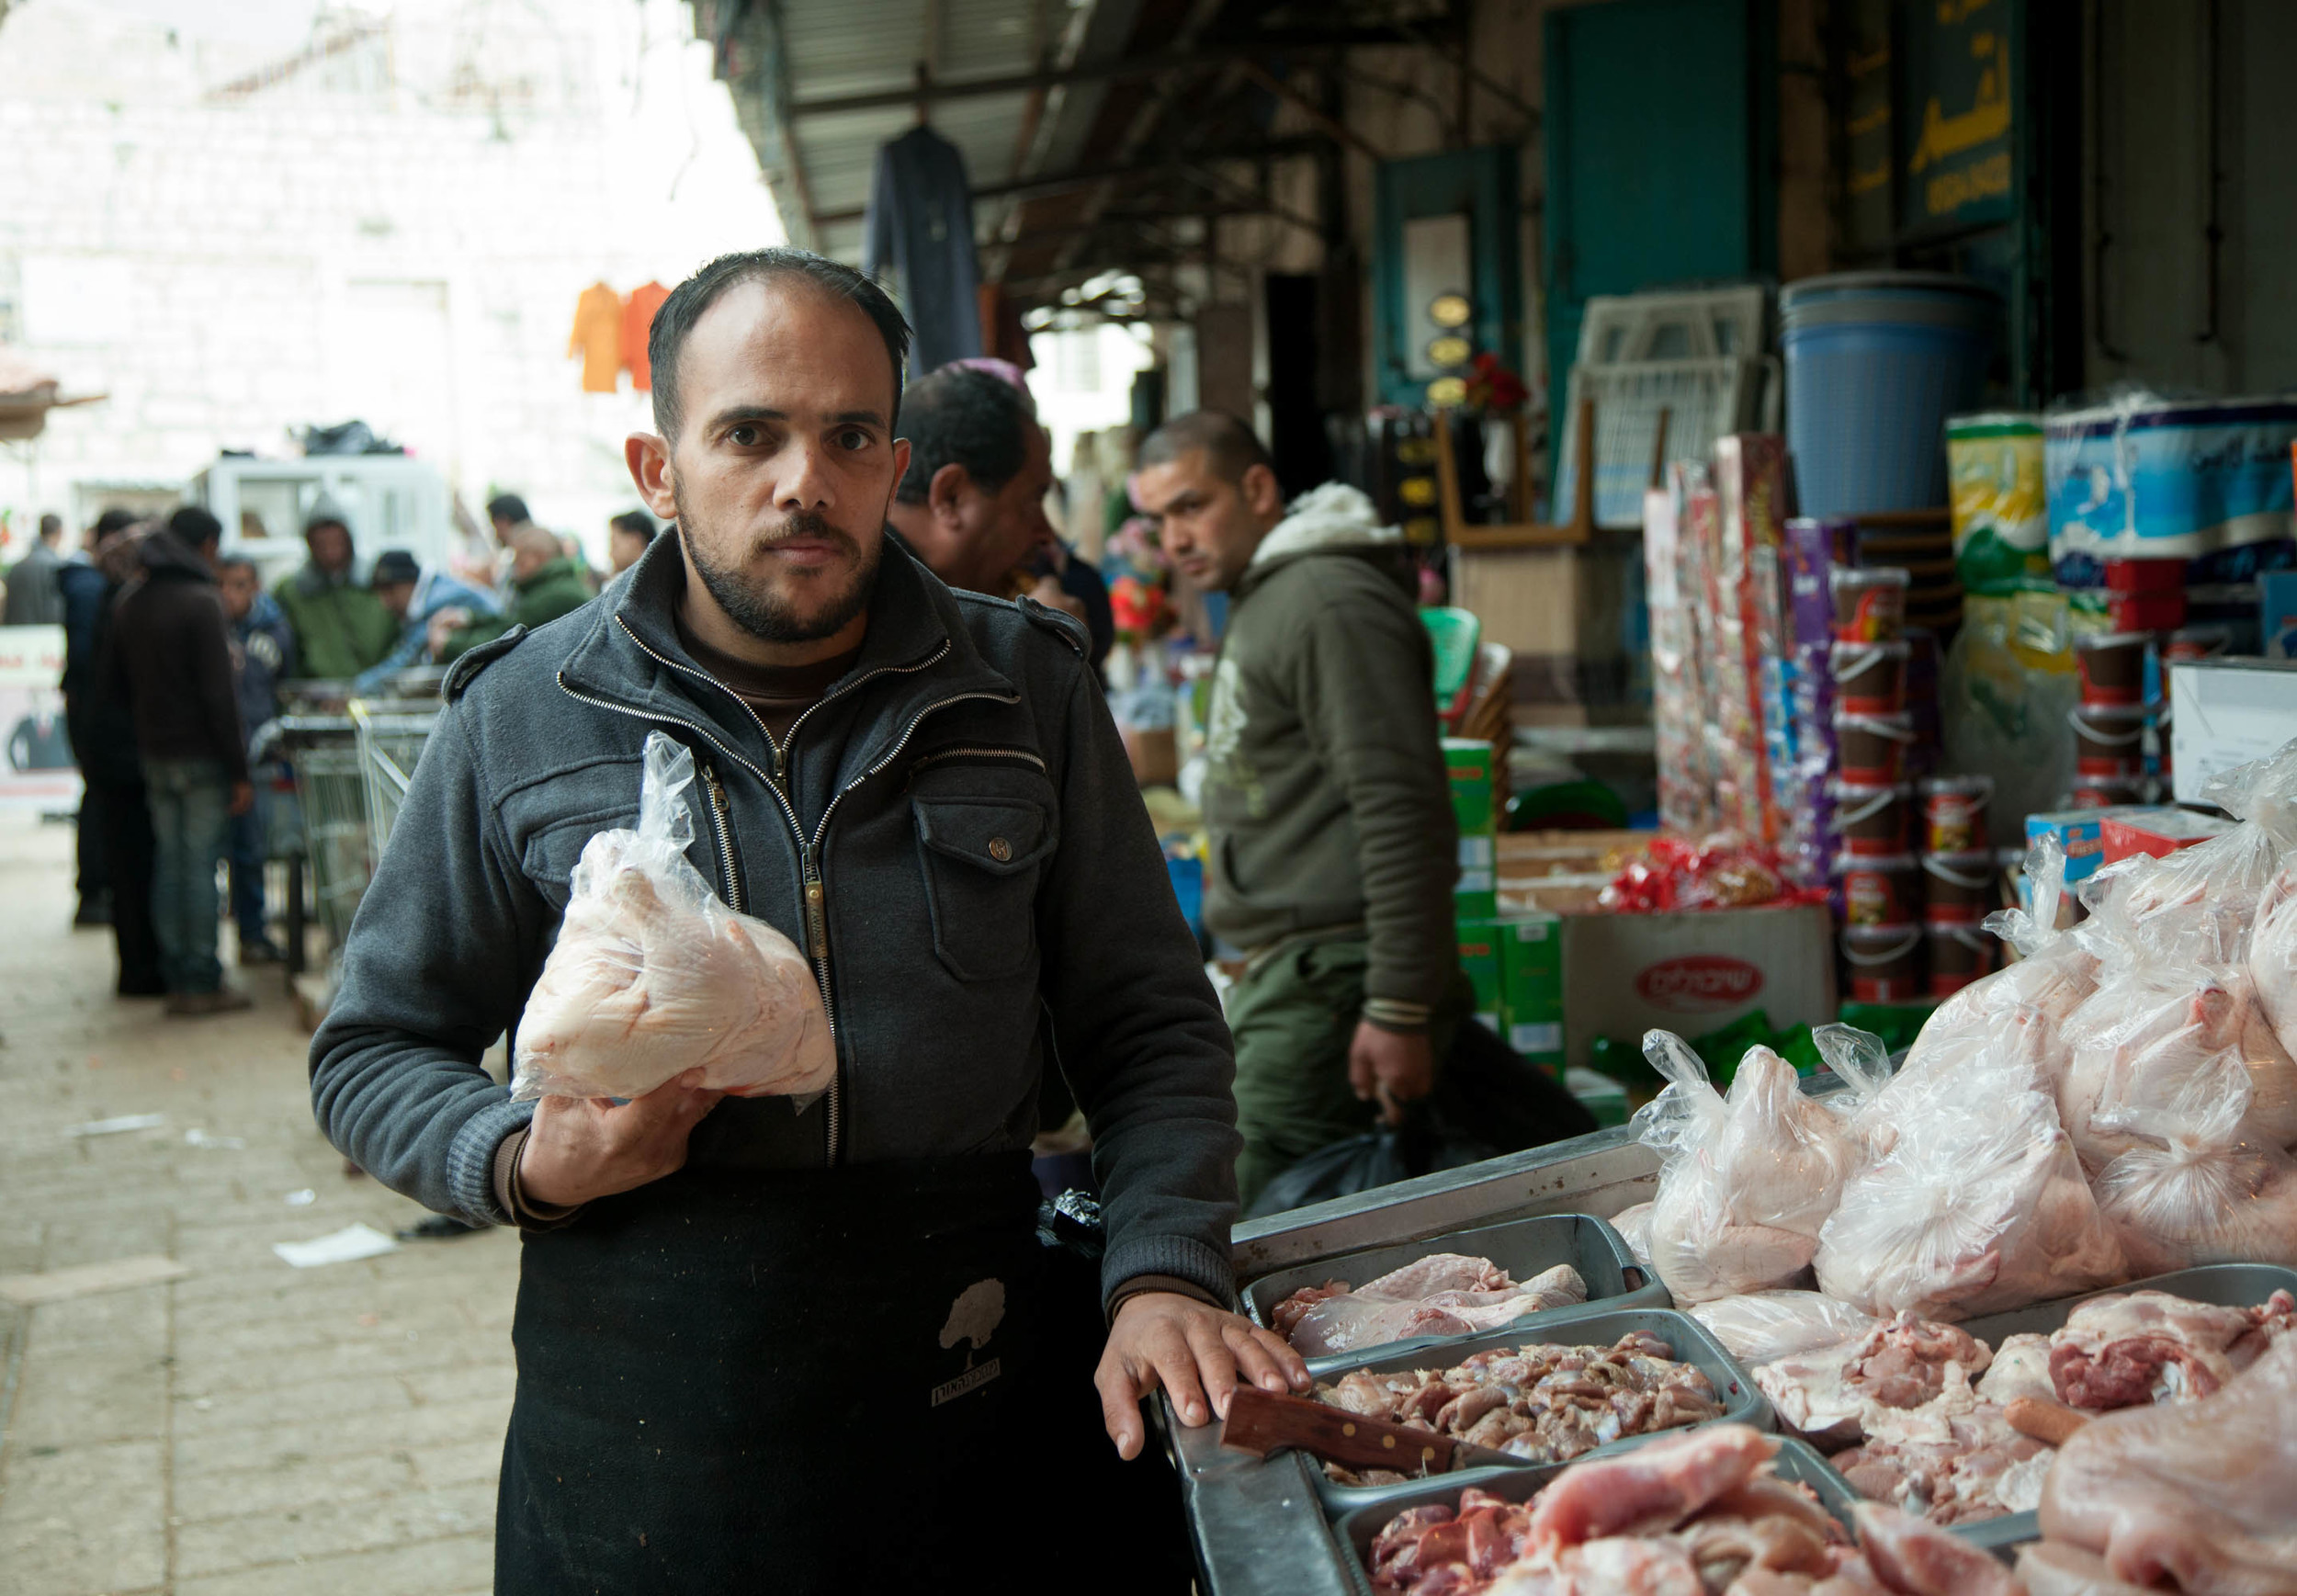 butcher, middle east markets, palestine, bethlehem, documentary photography, street photography, travel photography